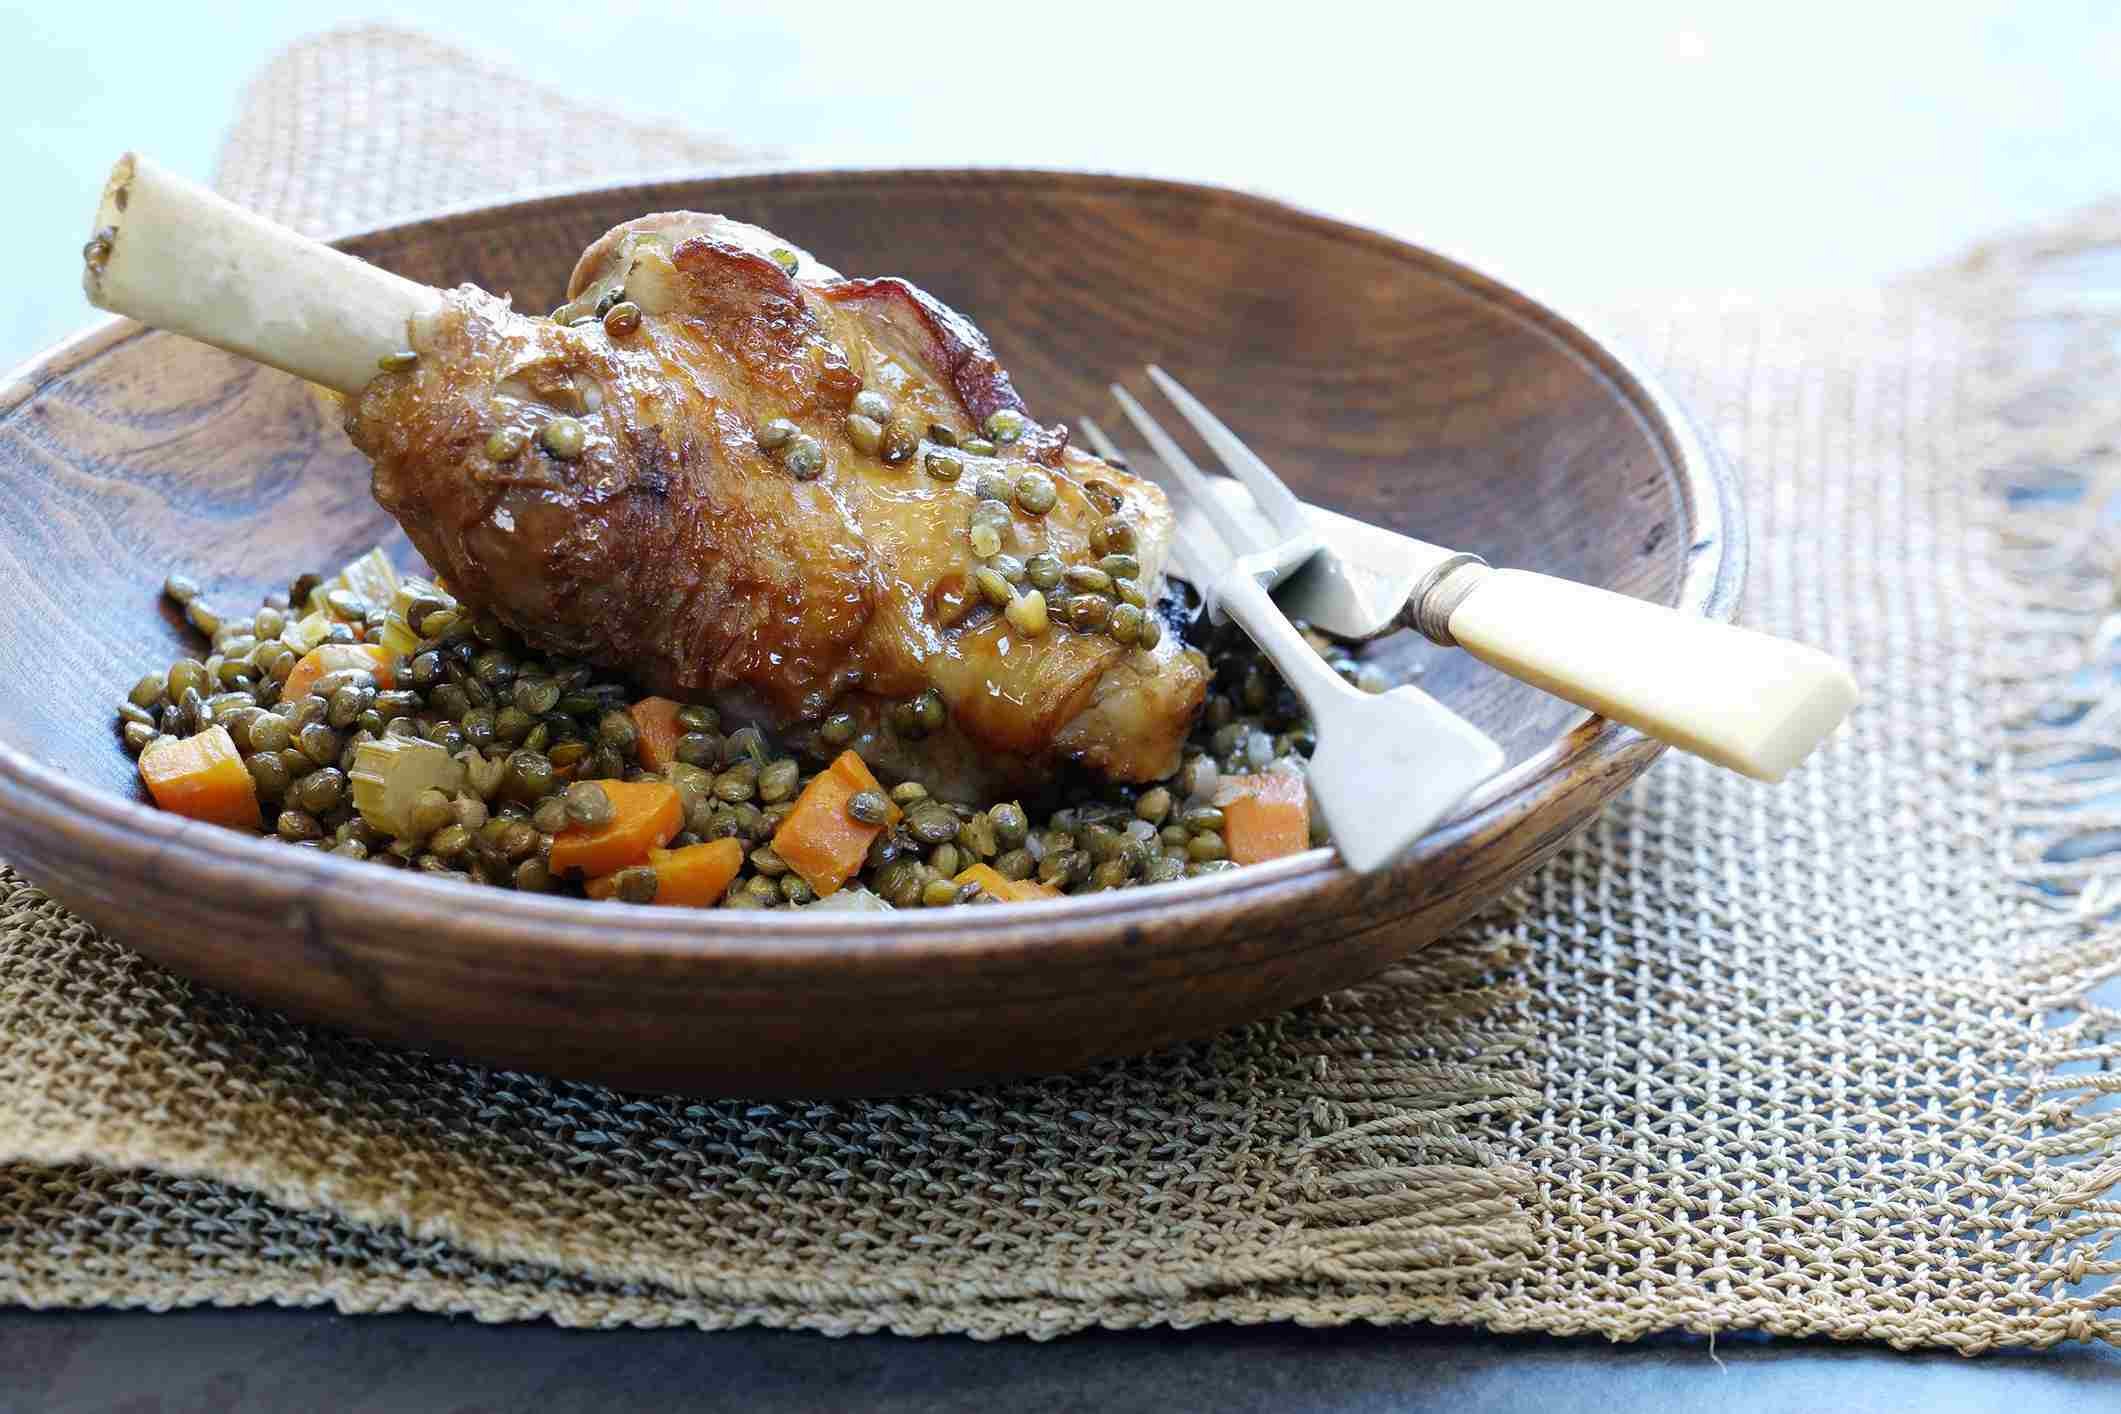 Lamb shank with lentils and carrots